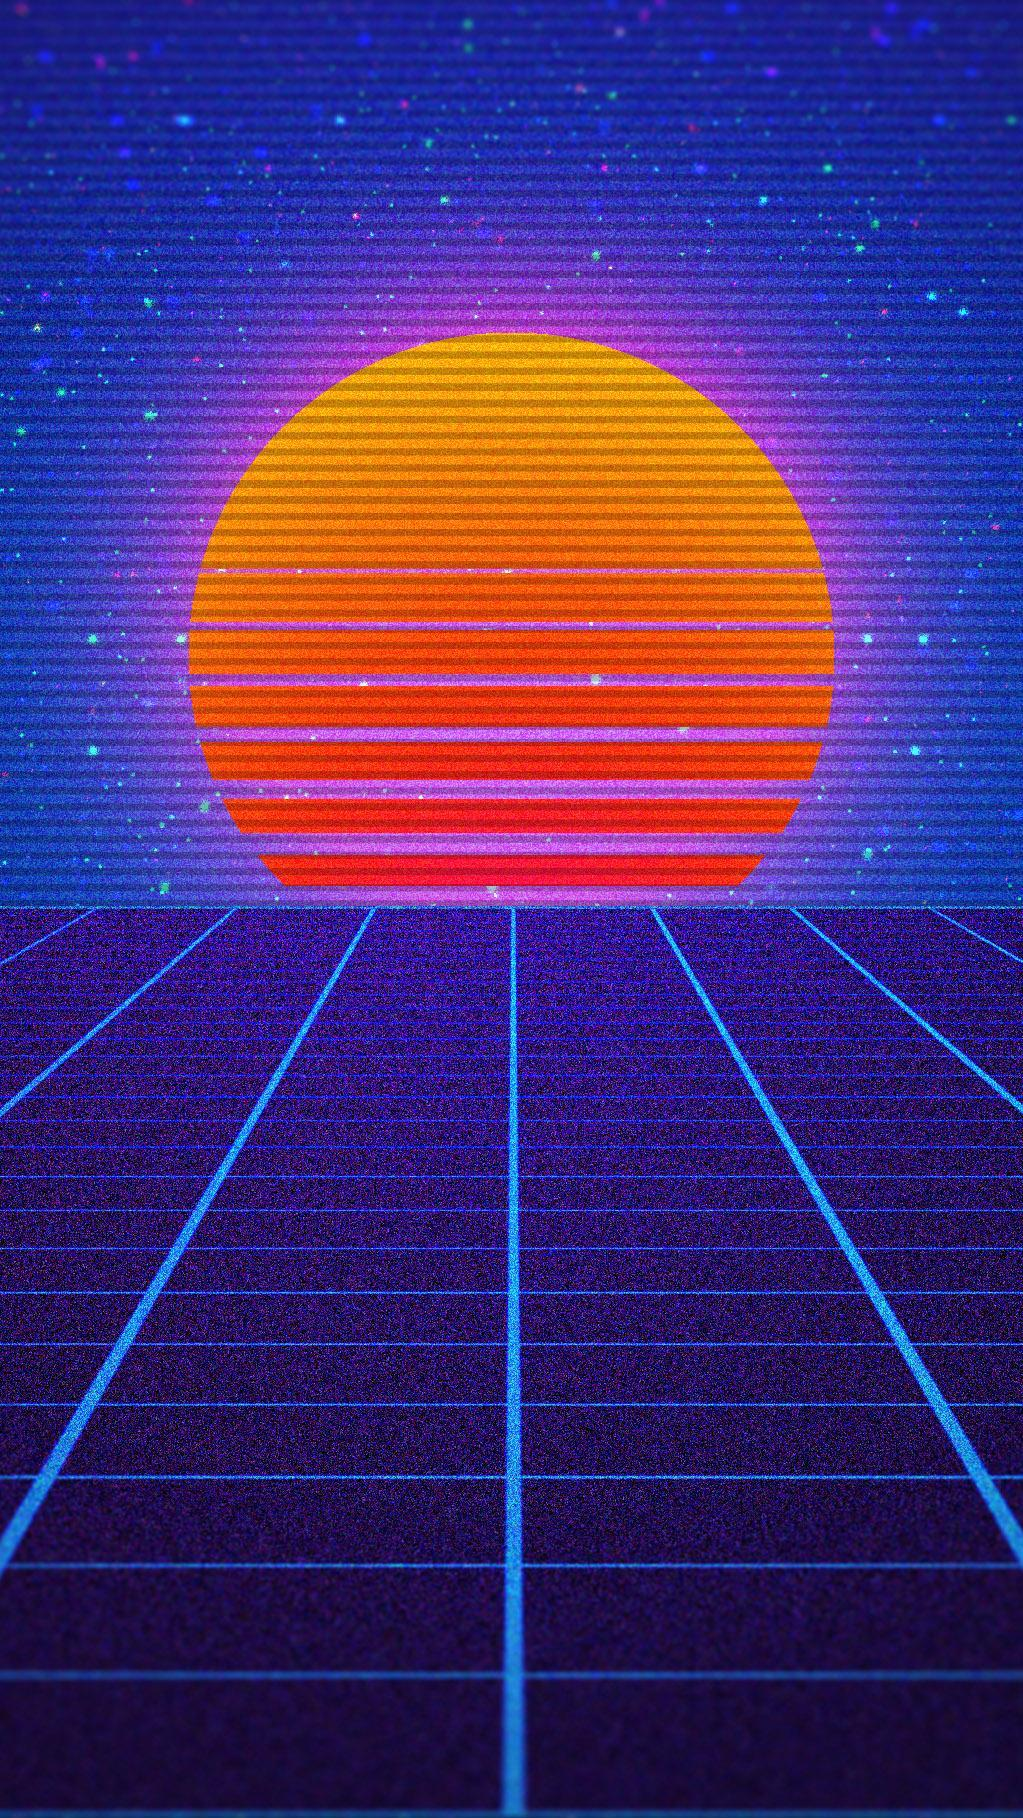 Neon Aesthetic Lights Phone Wallpapers - Wallpaper Cave